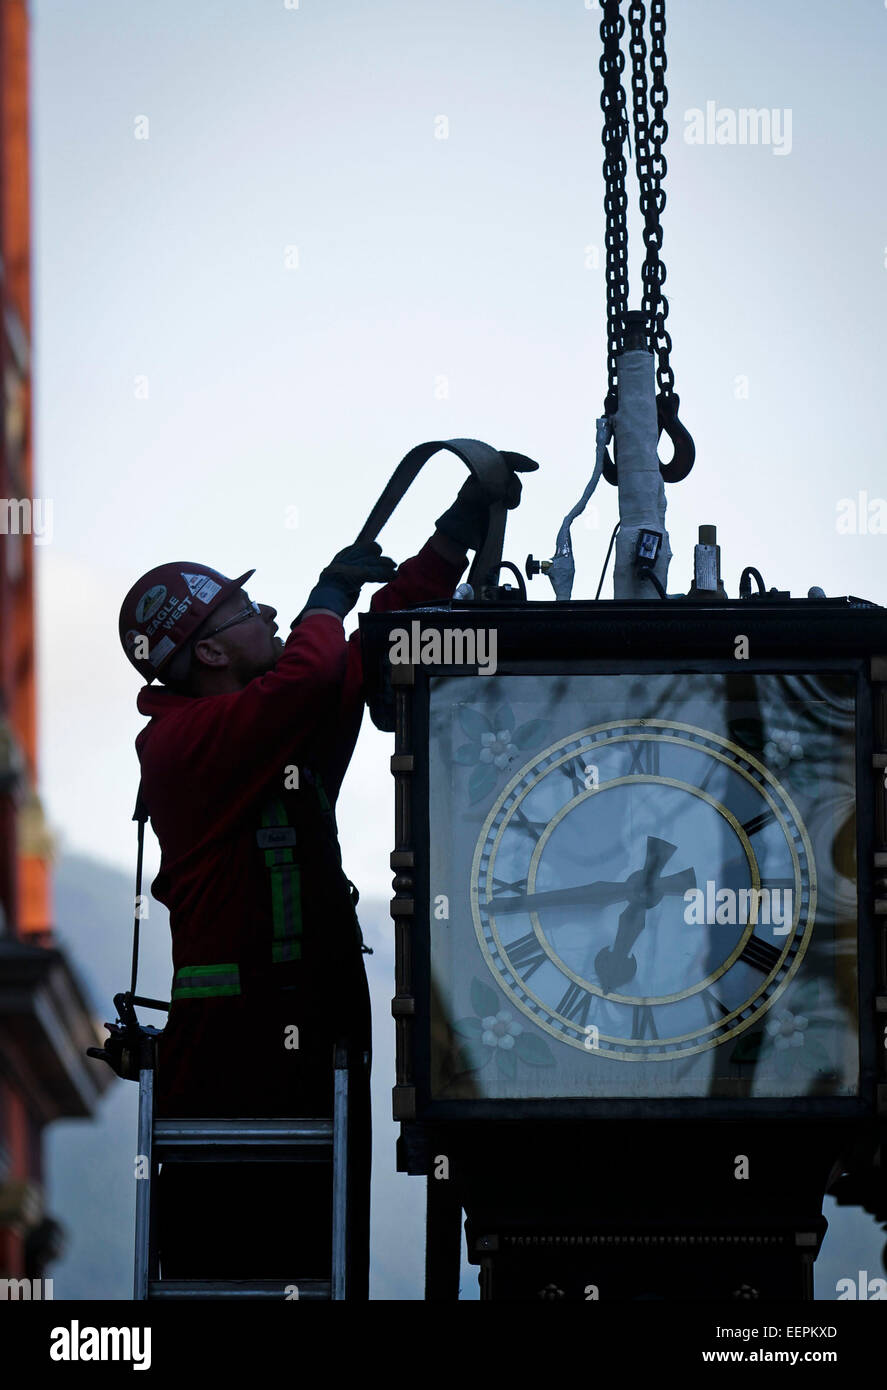 Canada, Vancouver. 21st Jan, 2015. A worker re-installs the steam clock to its original position at Gastown in Vancouver, - Stock Image